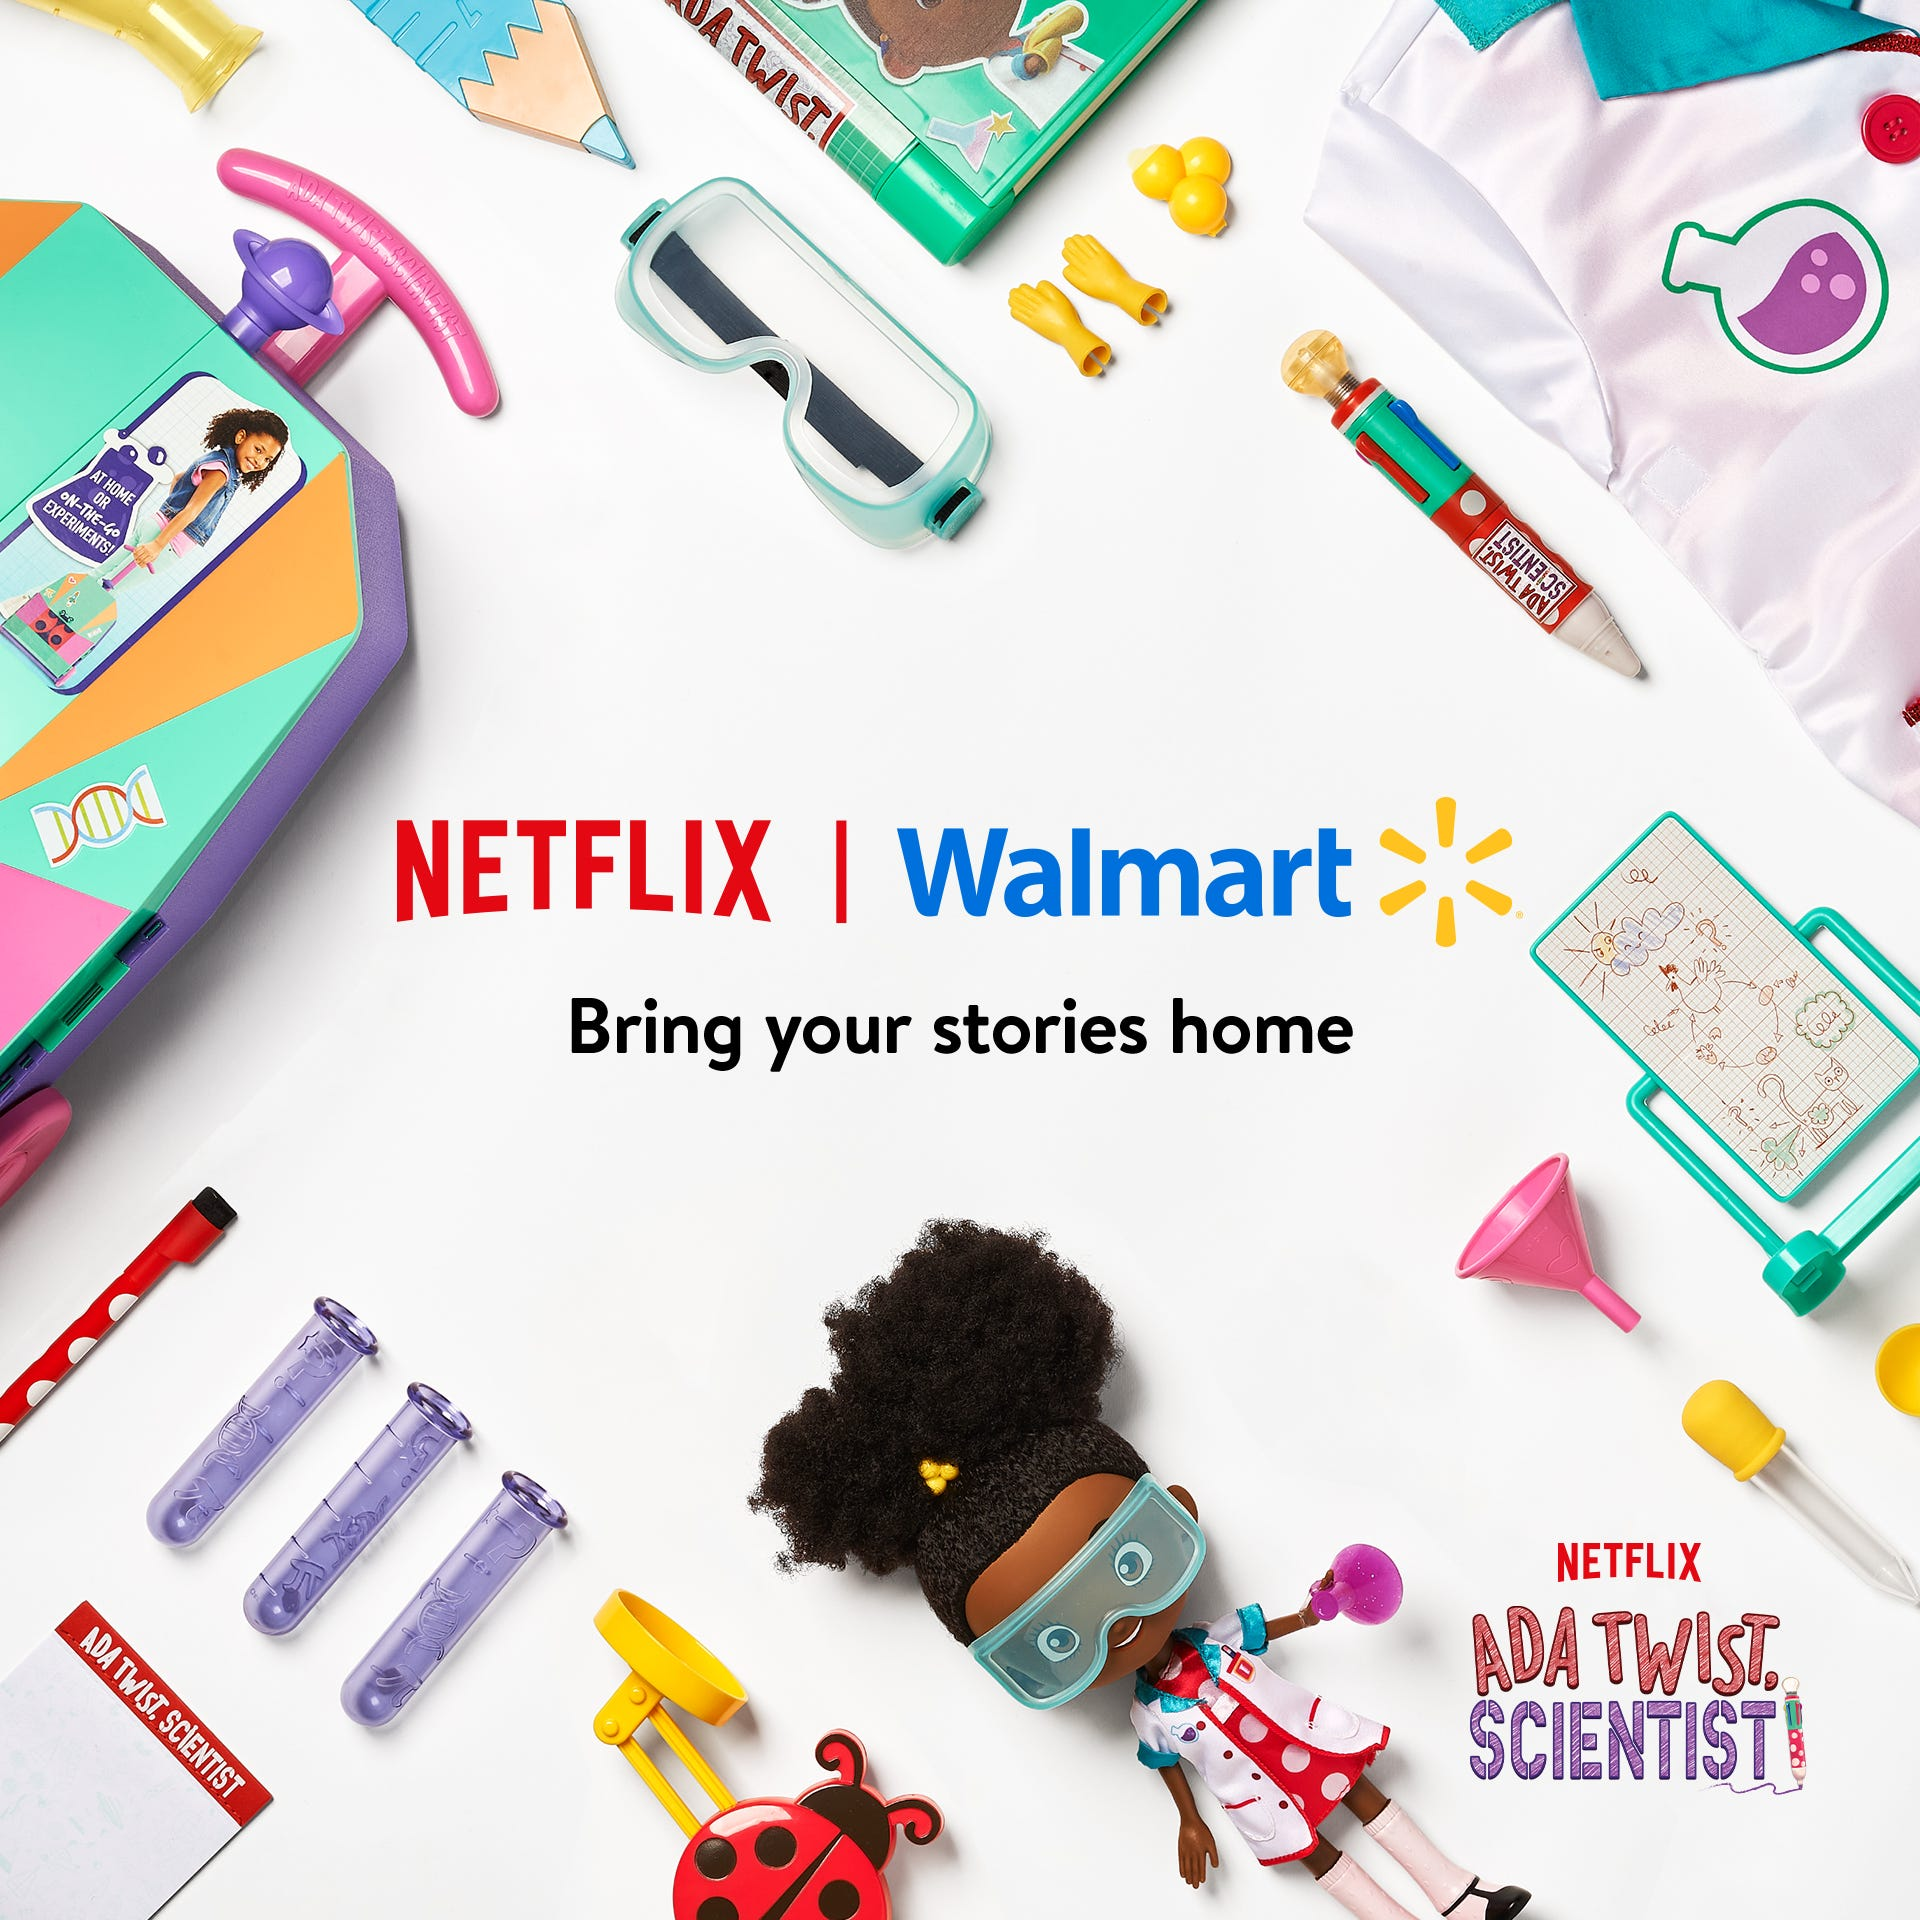 Walmart and Netflix open a new online store with Stranger Things, Cocomelon, Nailed It merchandise